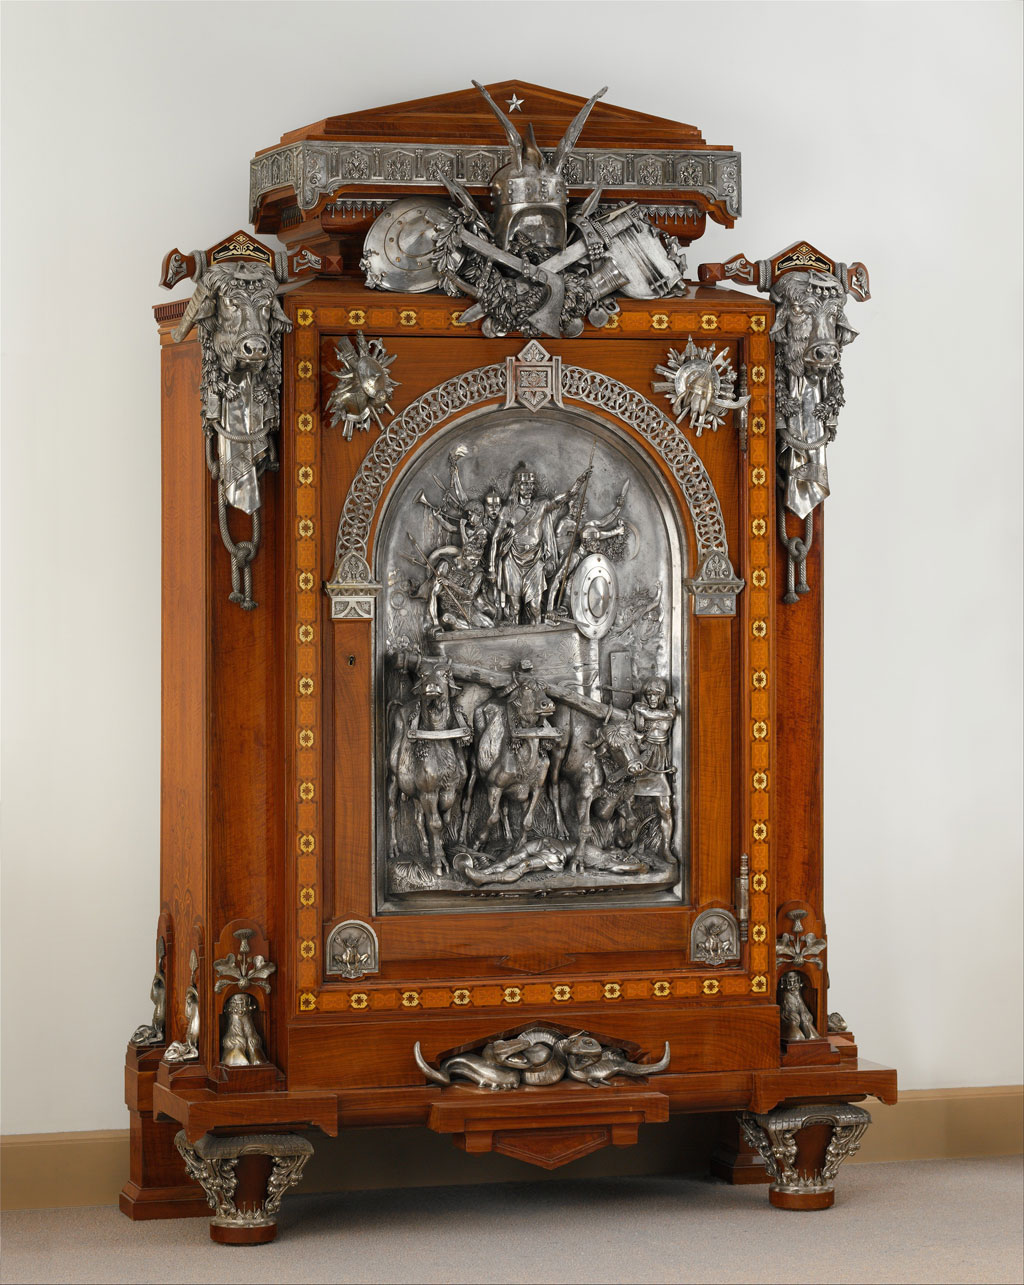 highlights from the met's collection (28)